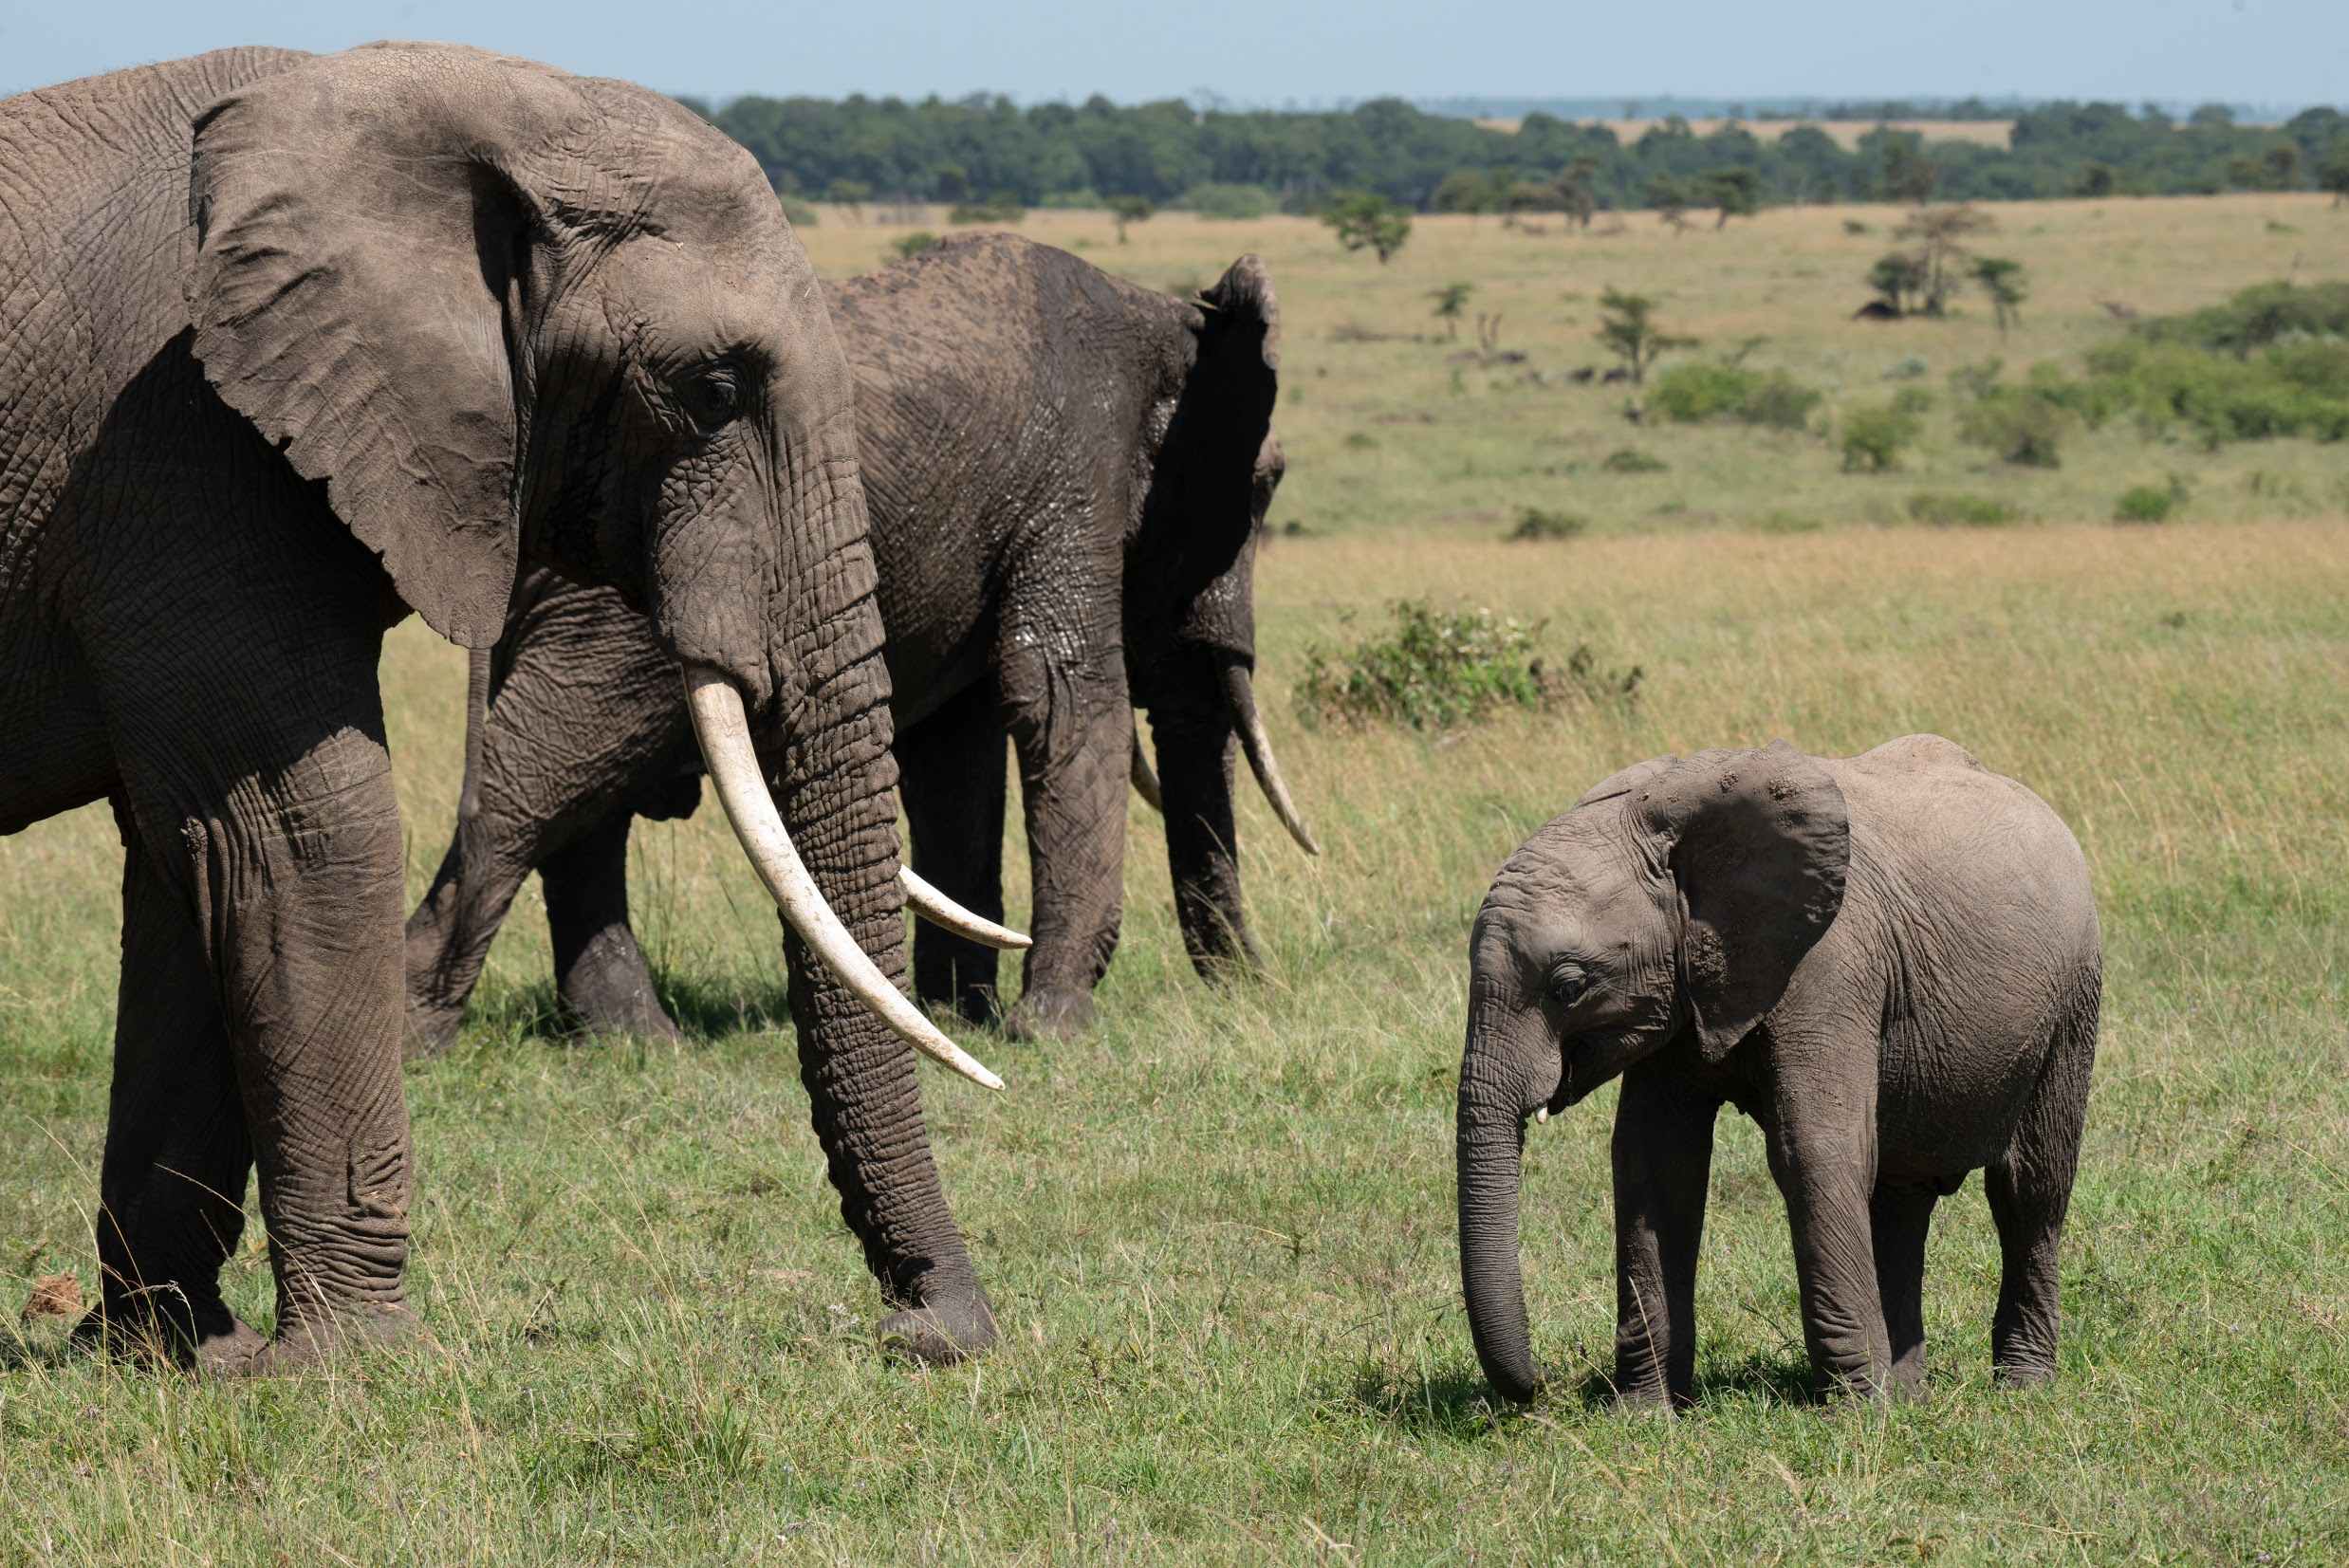 A baby elephant and two adults on the plains